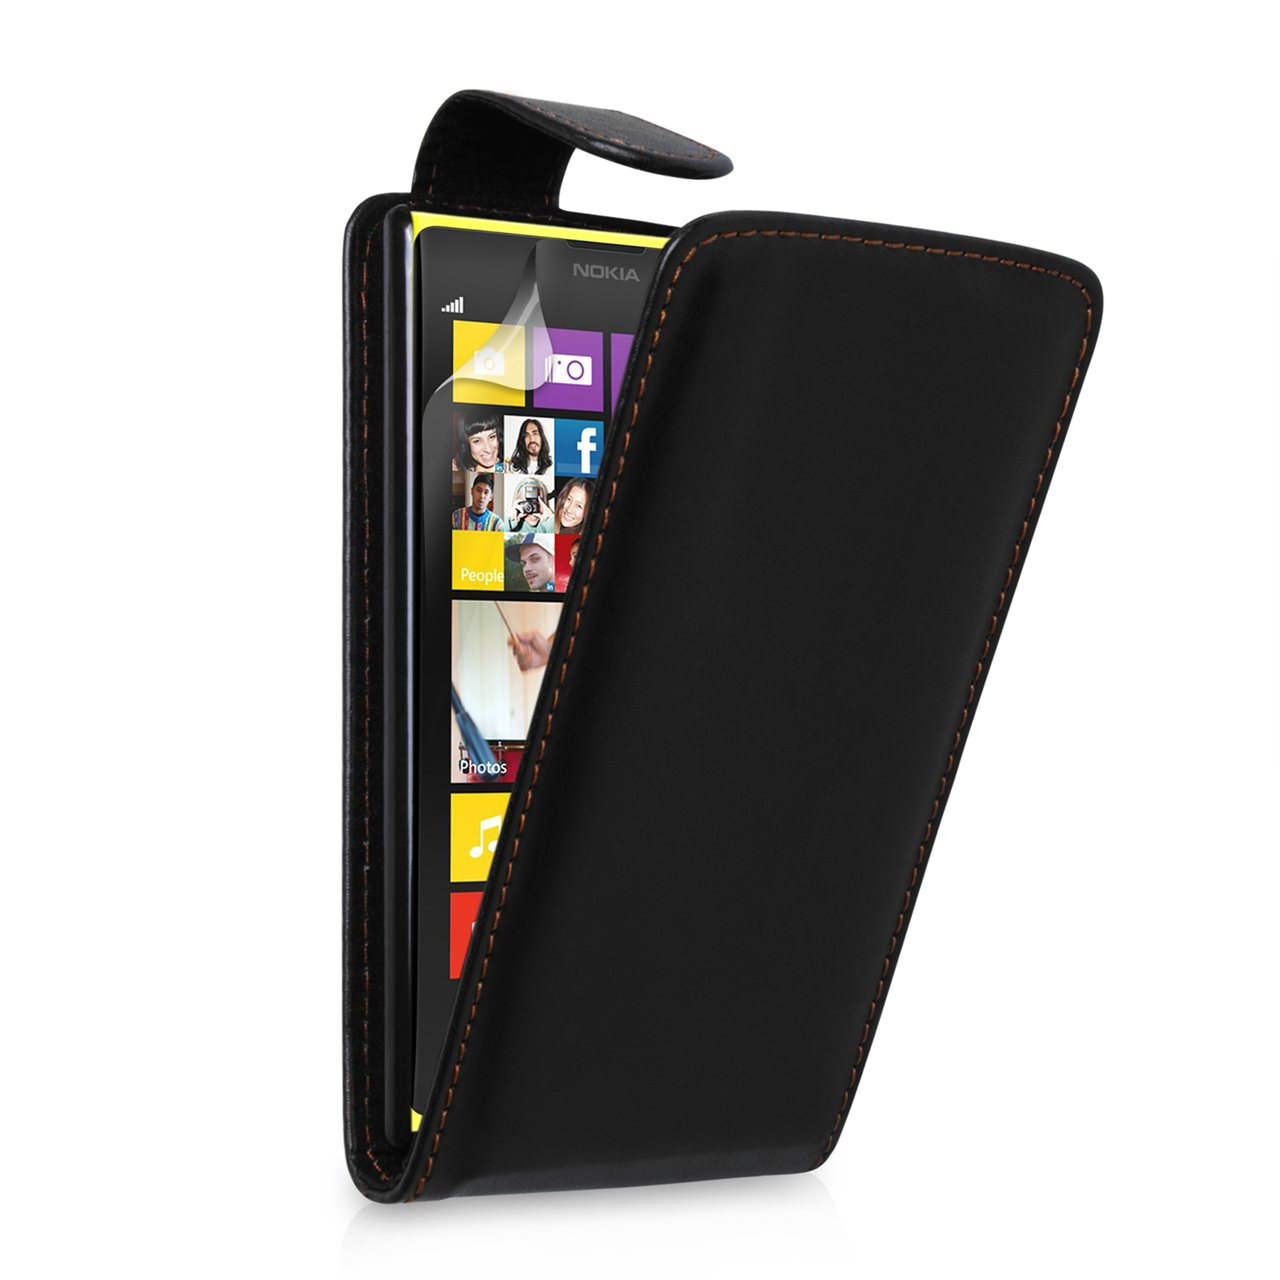 YouSave Accessories Nokia Lumia 1020 Leather Effect Flip Case - Black